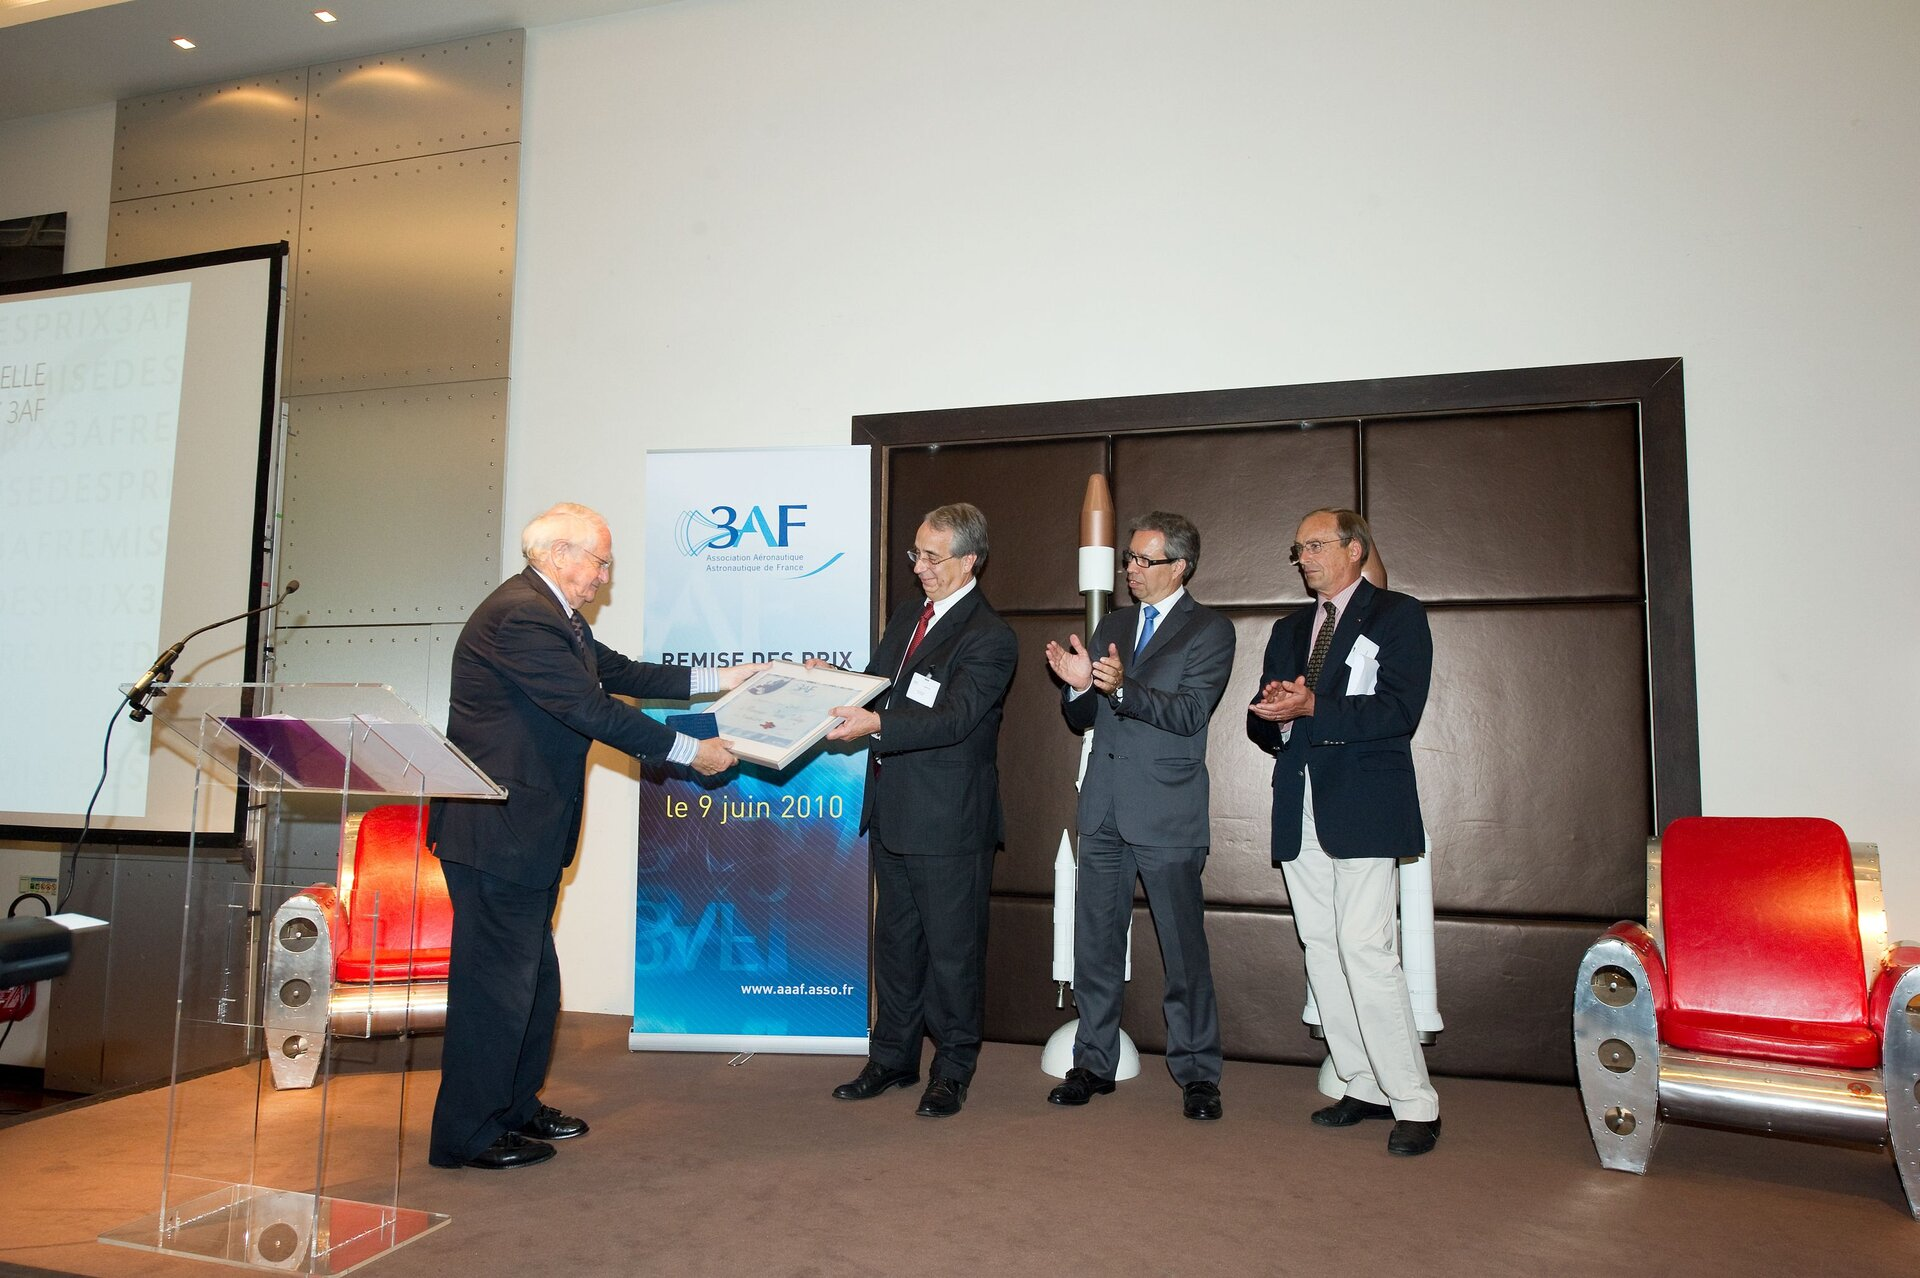 The Herschel and Planck AAAF Grand Prix 2010 award ceremony